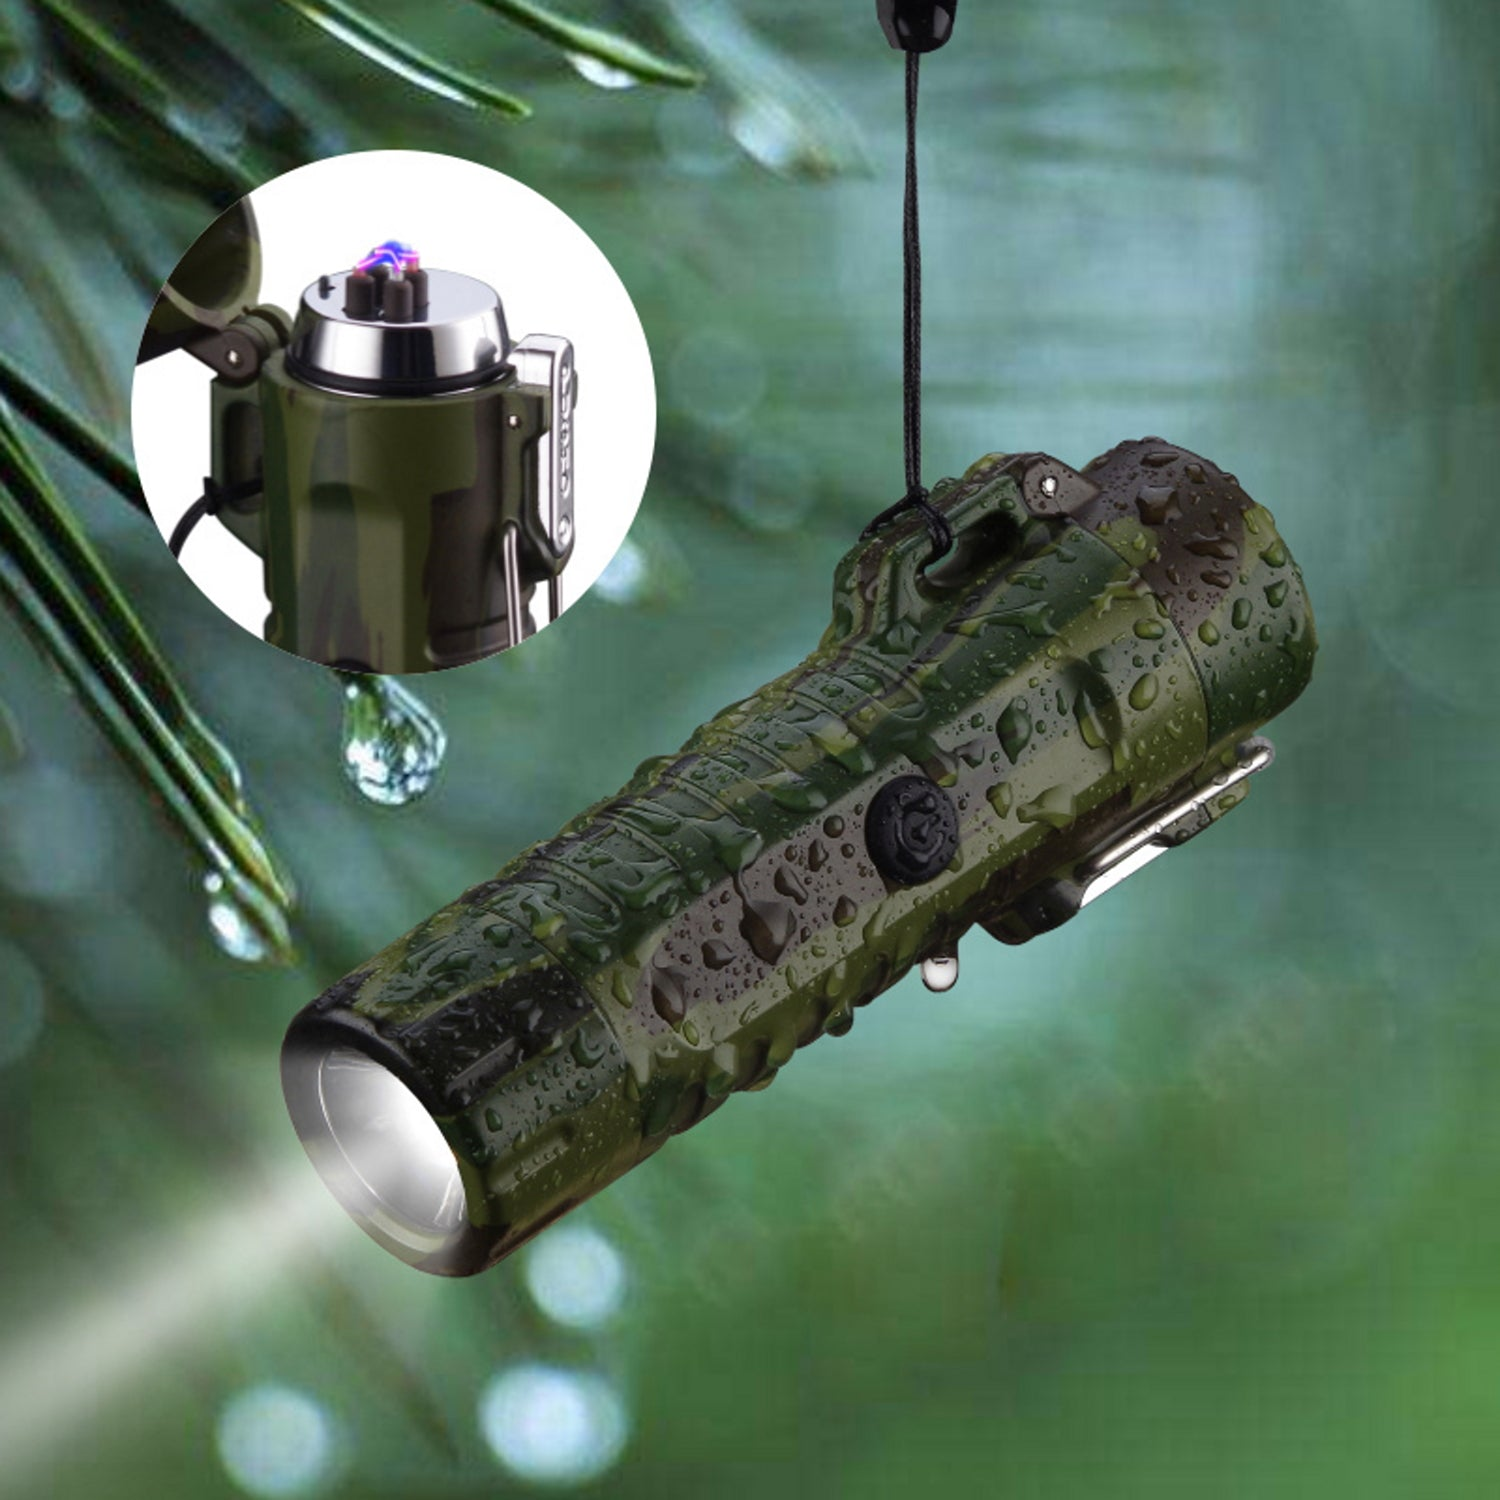 Camo Tactical Waterproof Dual Arc Lighter with LED Tri-Phase Flashlight